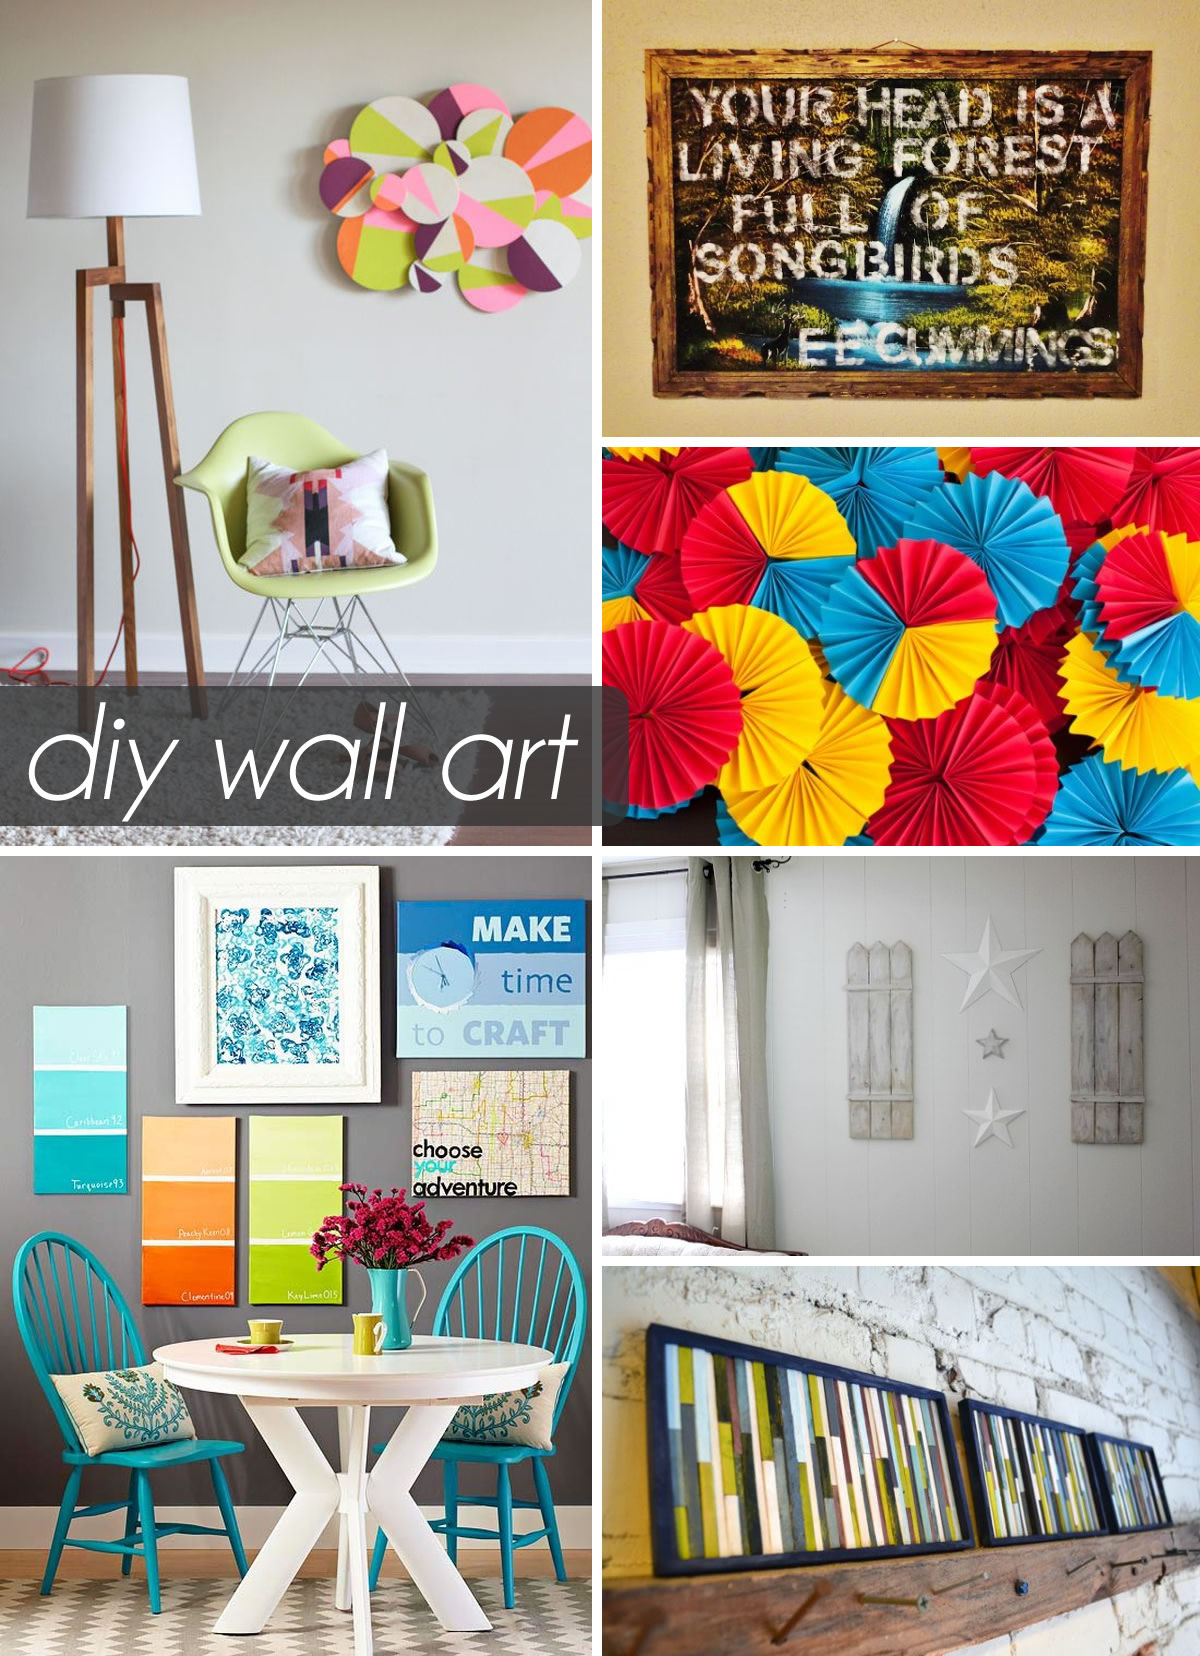 50 beautiful diy wall art ideas for your home - Diy Wall Decor For Bedroom